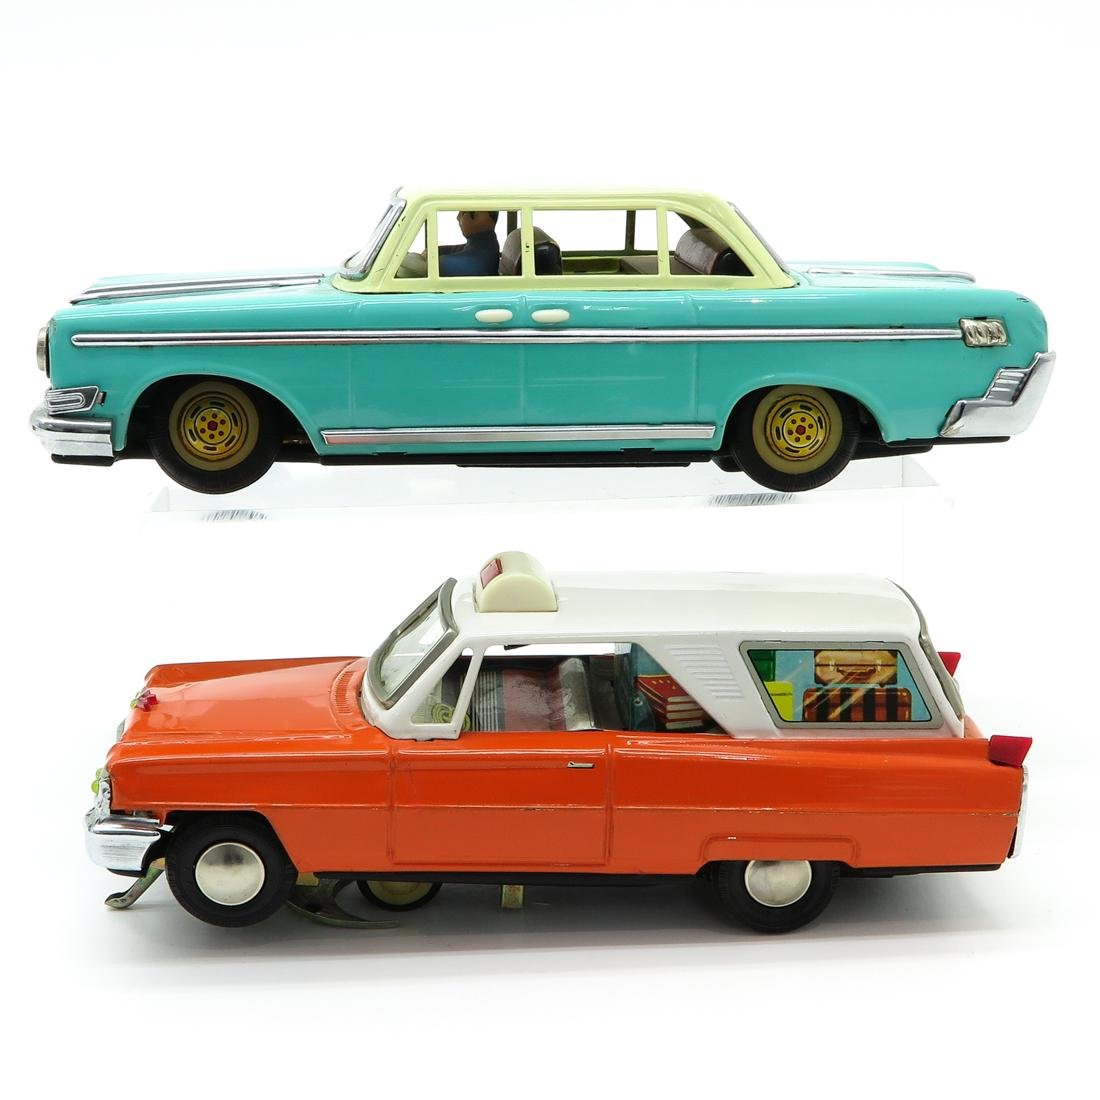 Lot of 2 Vintage Toy Cars